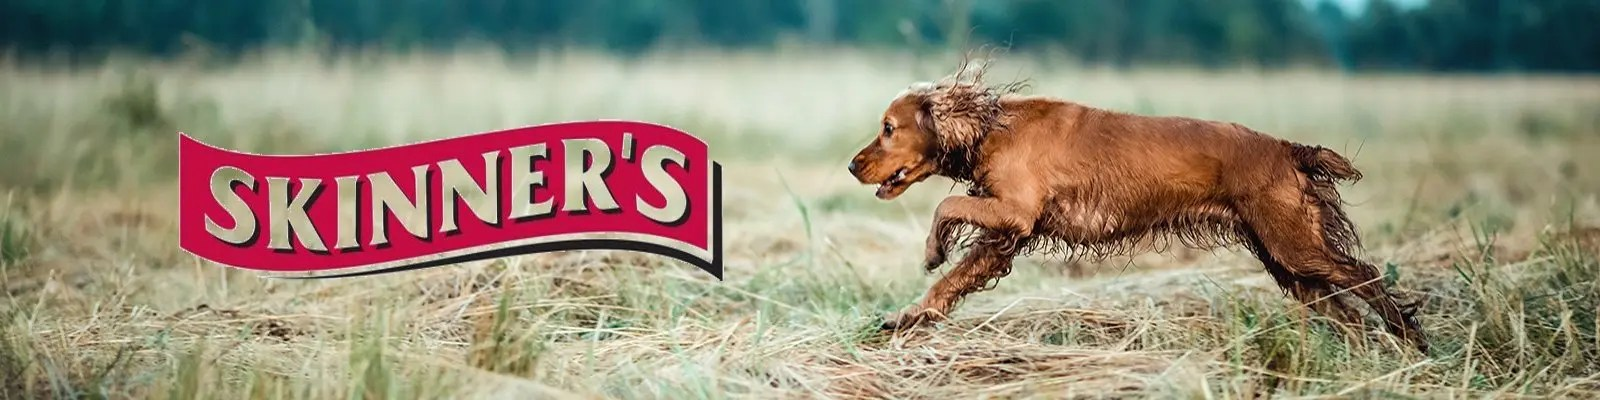 Skinners Dog Food Banner